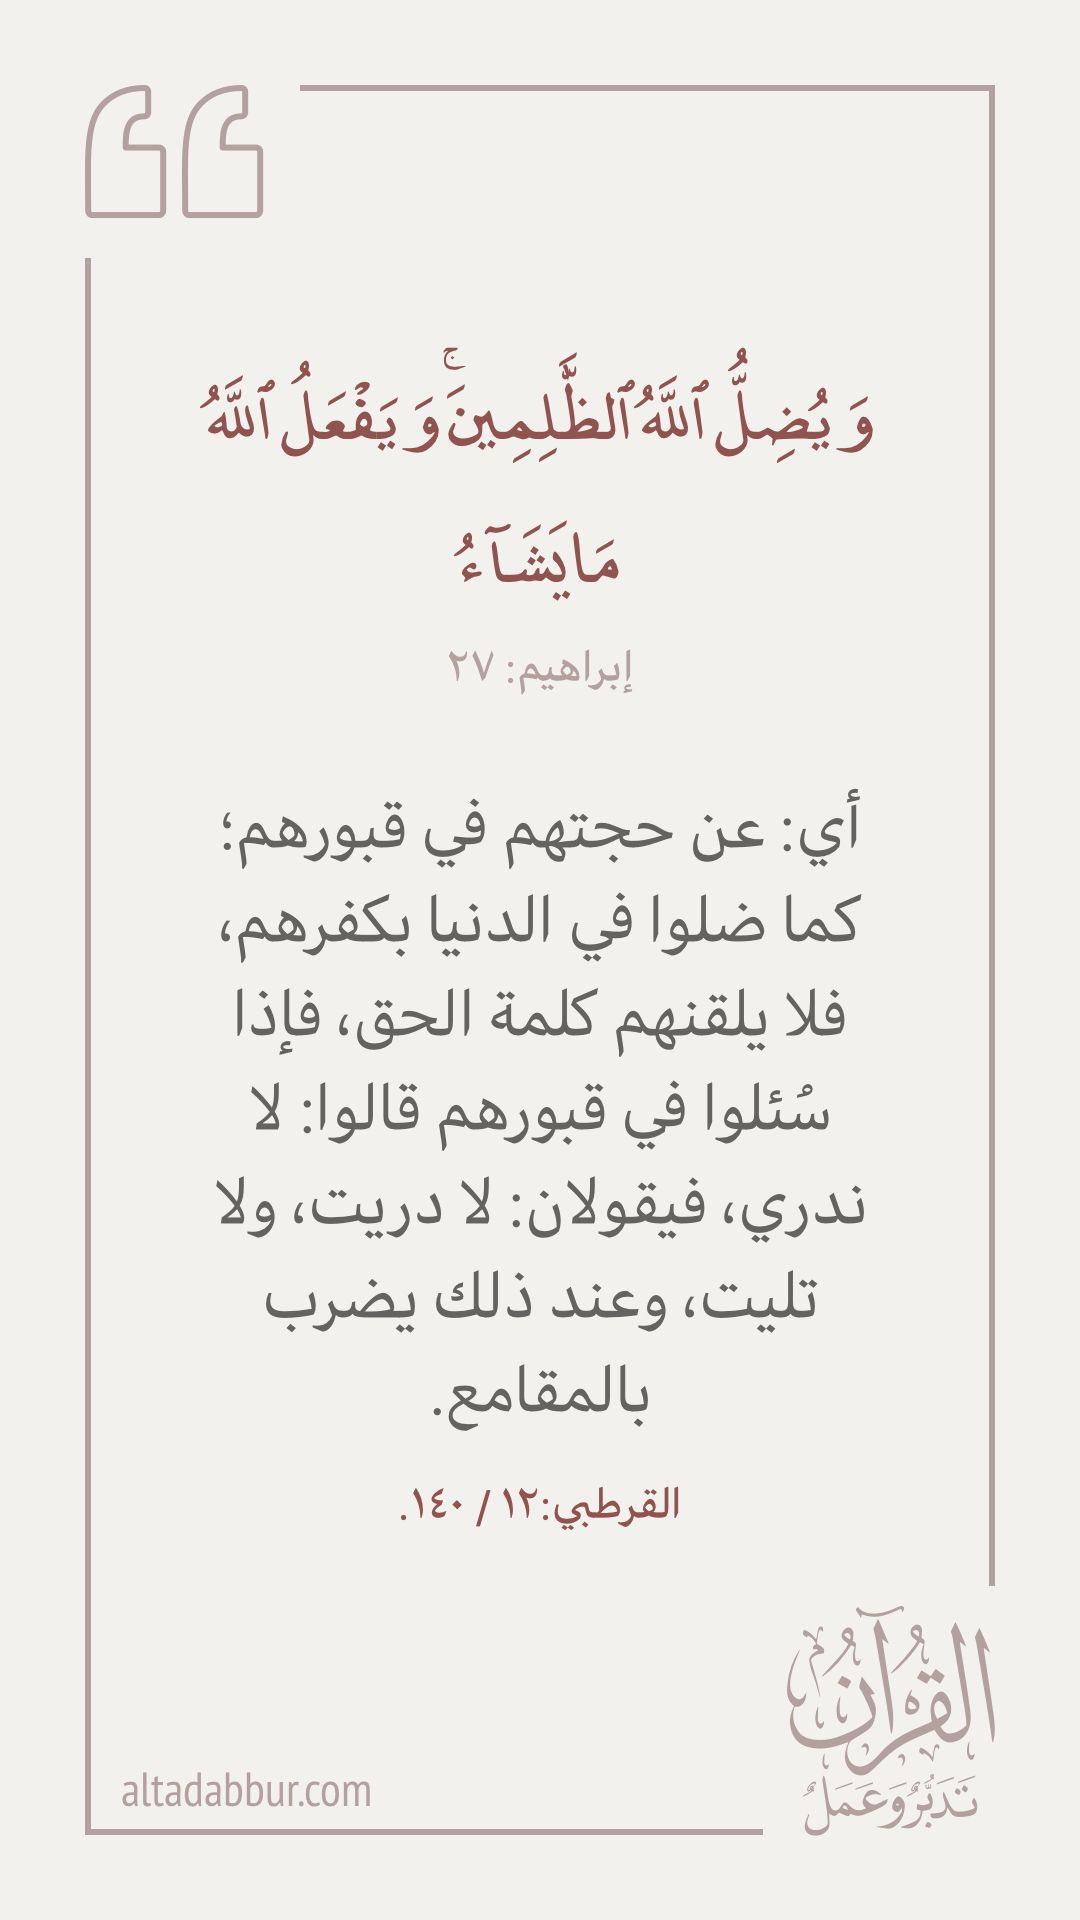 Pin By On قرآن تفسير وتدب ر Quotes Words Word Search Puzzle